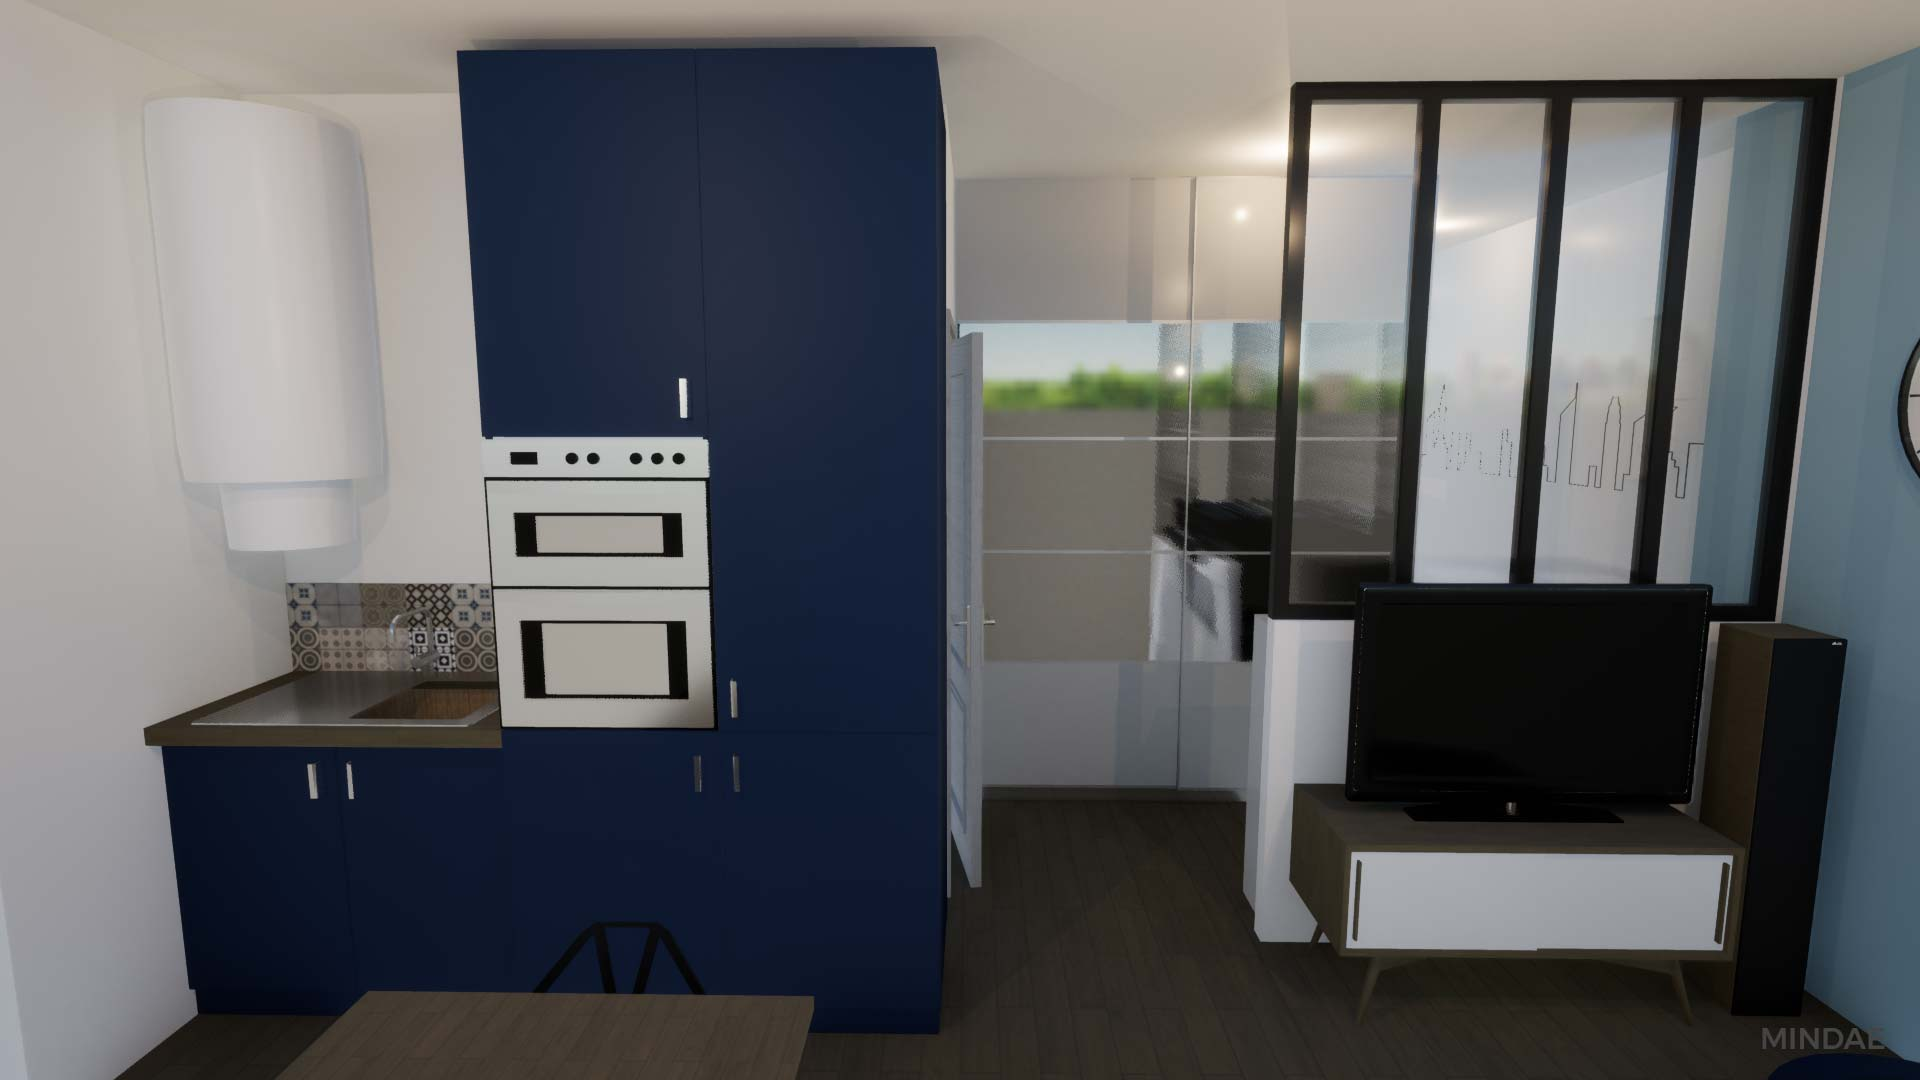 Mindae_3D_appartement_caen_saint_laurent_investisseur_colocation_airbnb_locatif_renovation_F2_F3-(4)